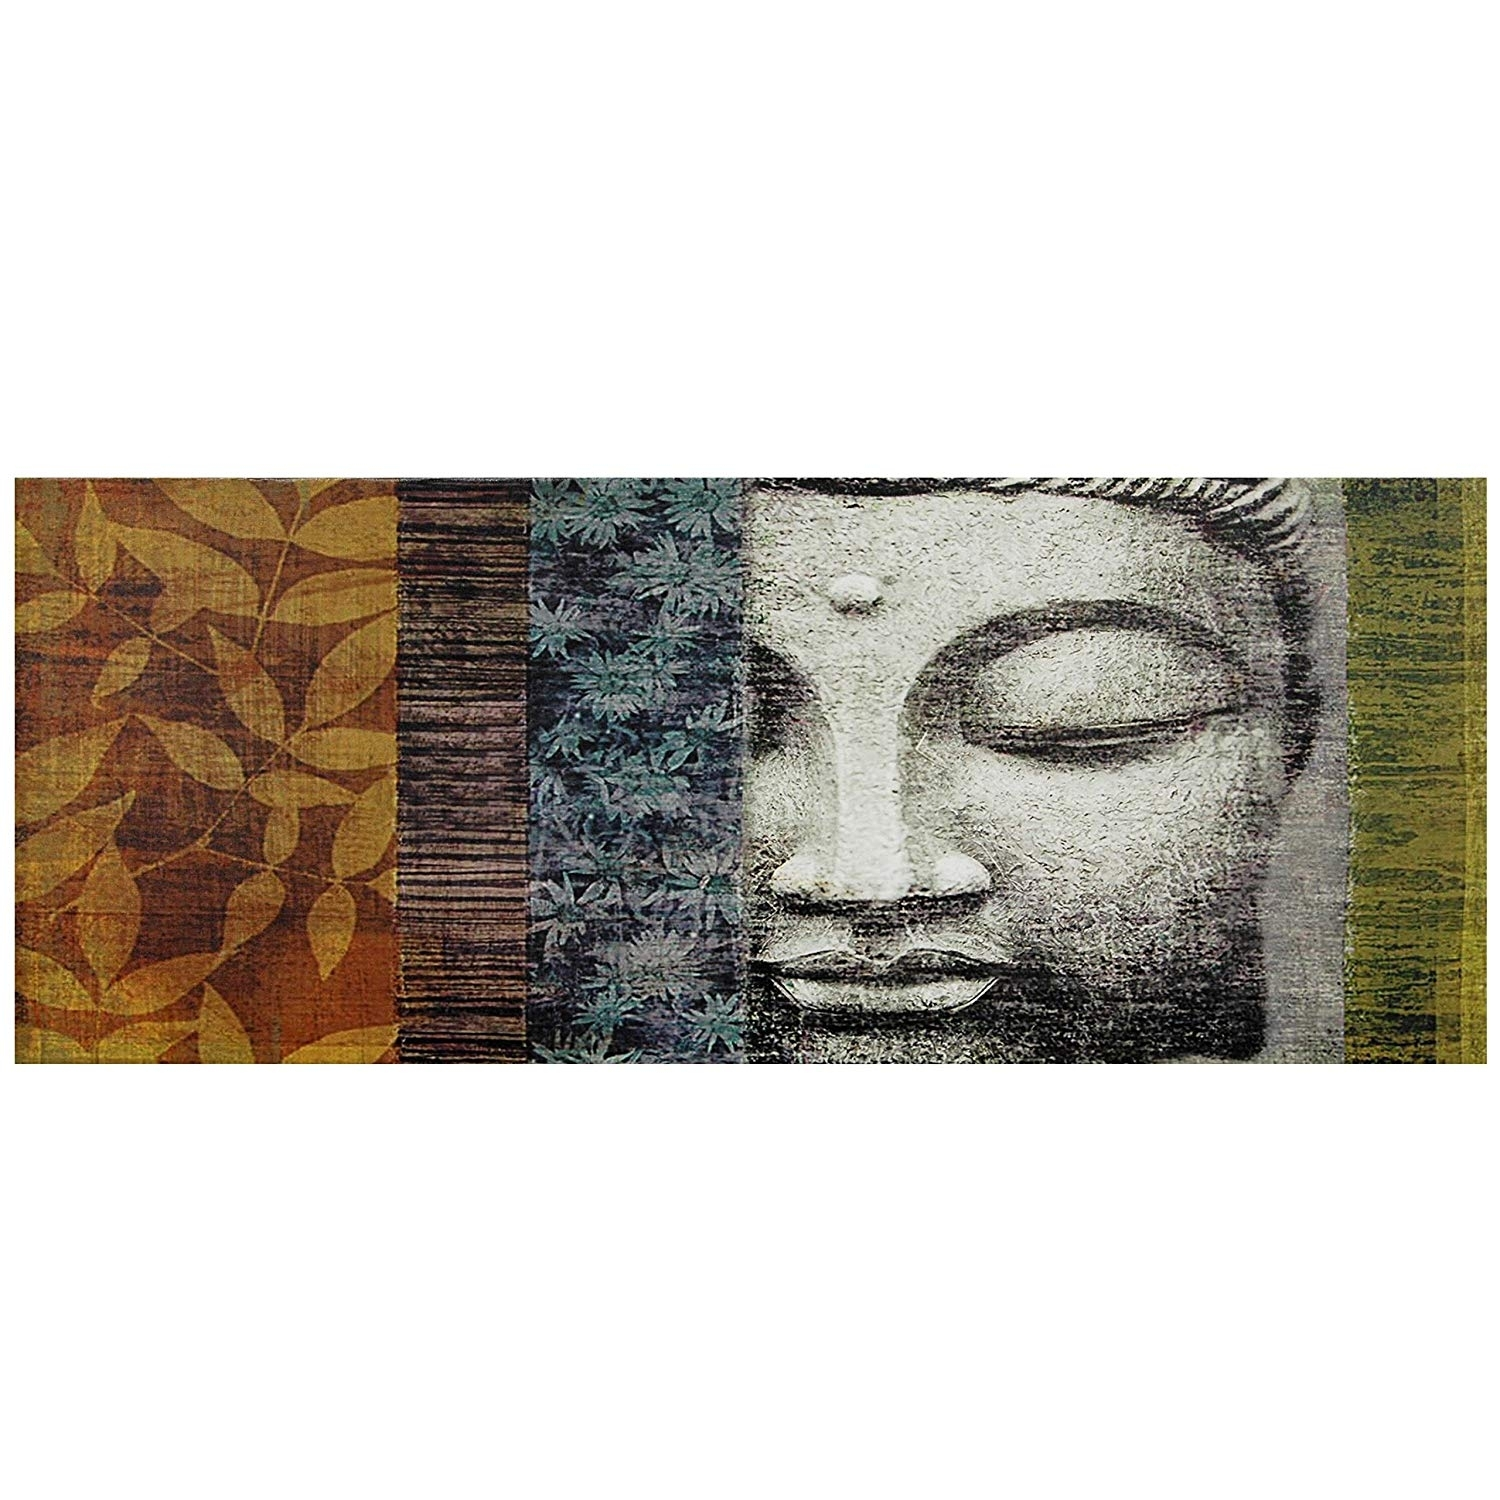 Amazon: Oriental Furniture Buddha Statue Canvas Wall Art Intended For Oriental Wall Art (View 1 of 20)